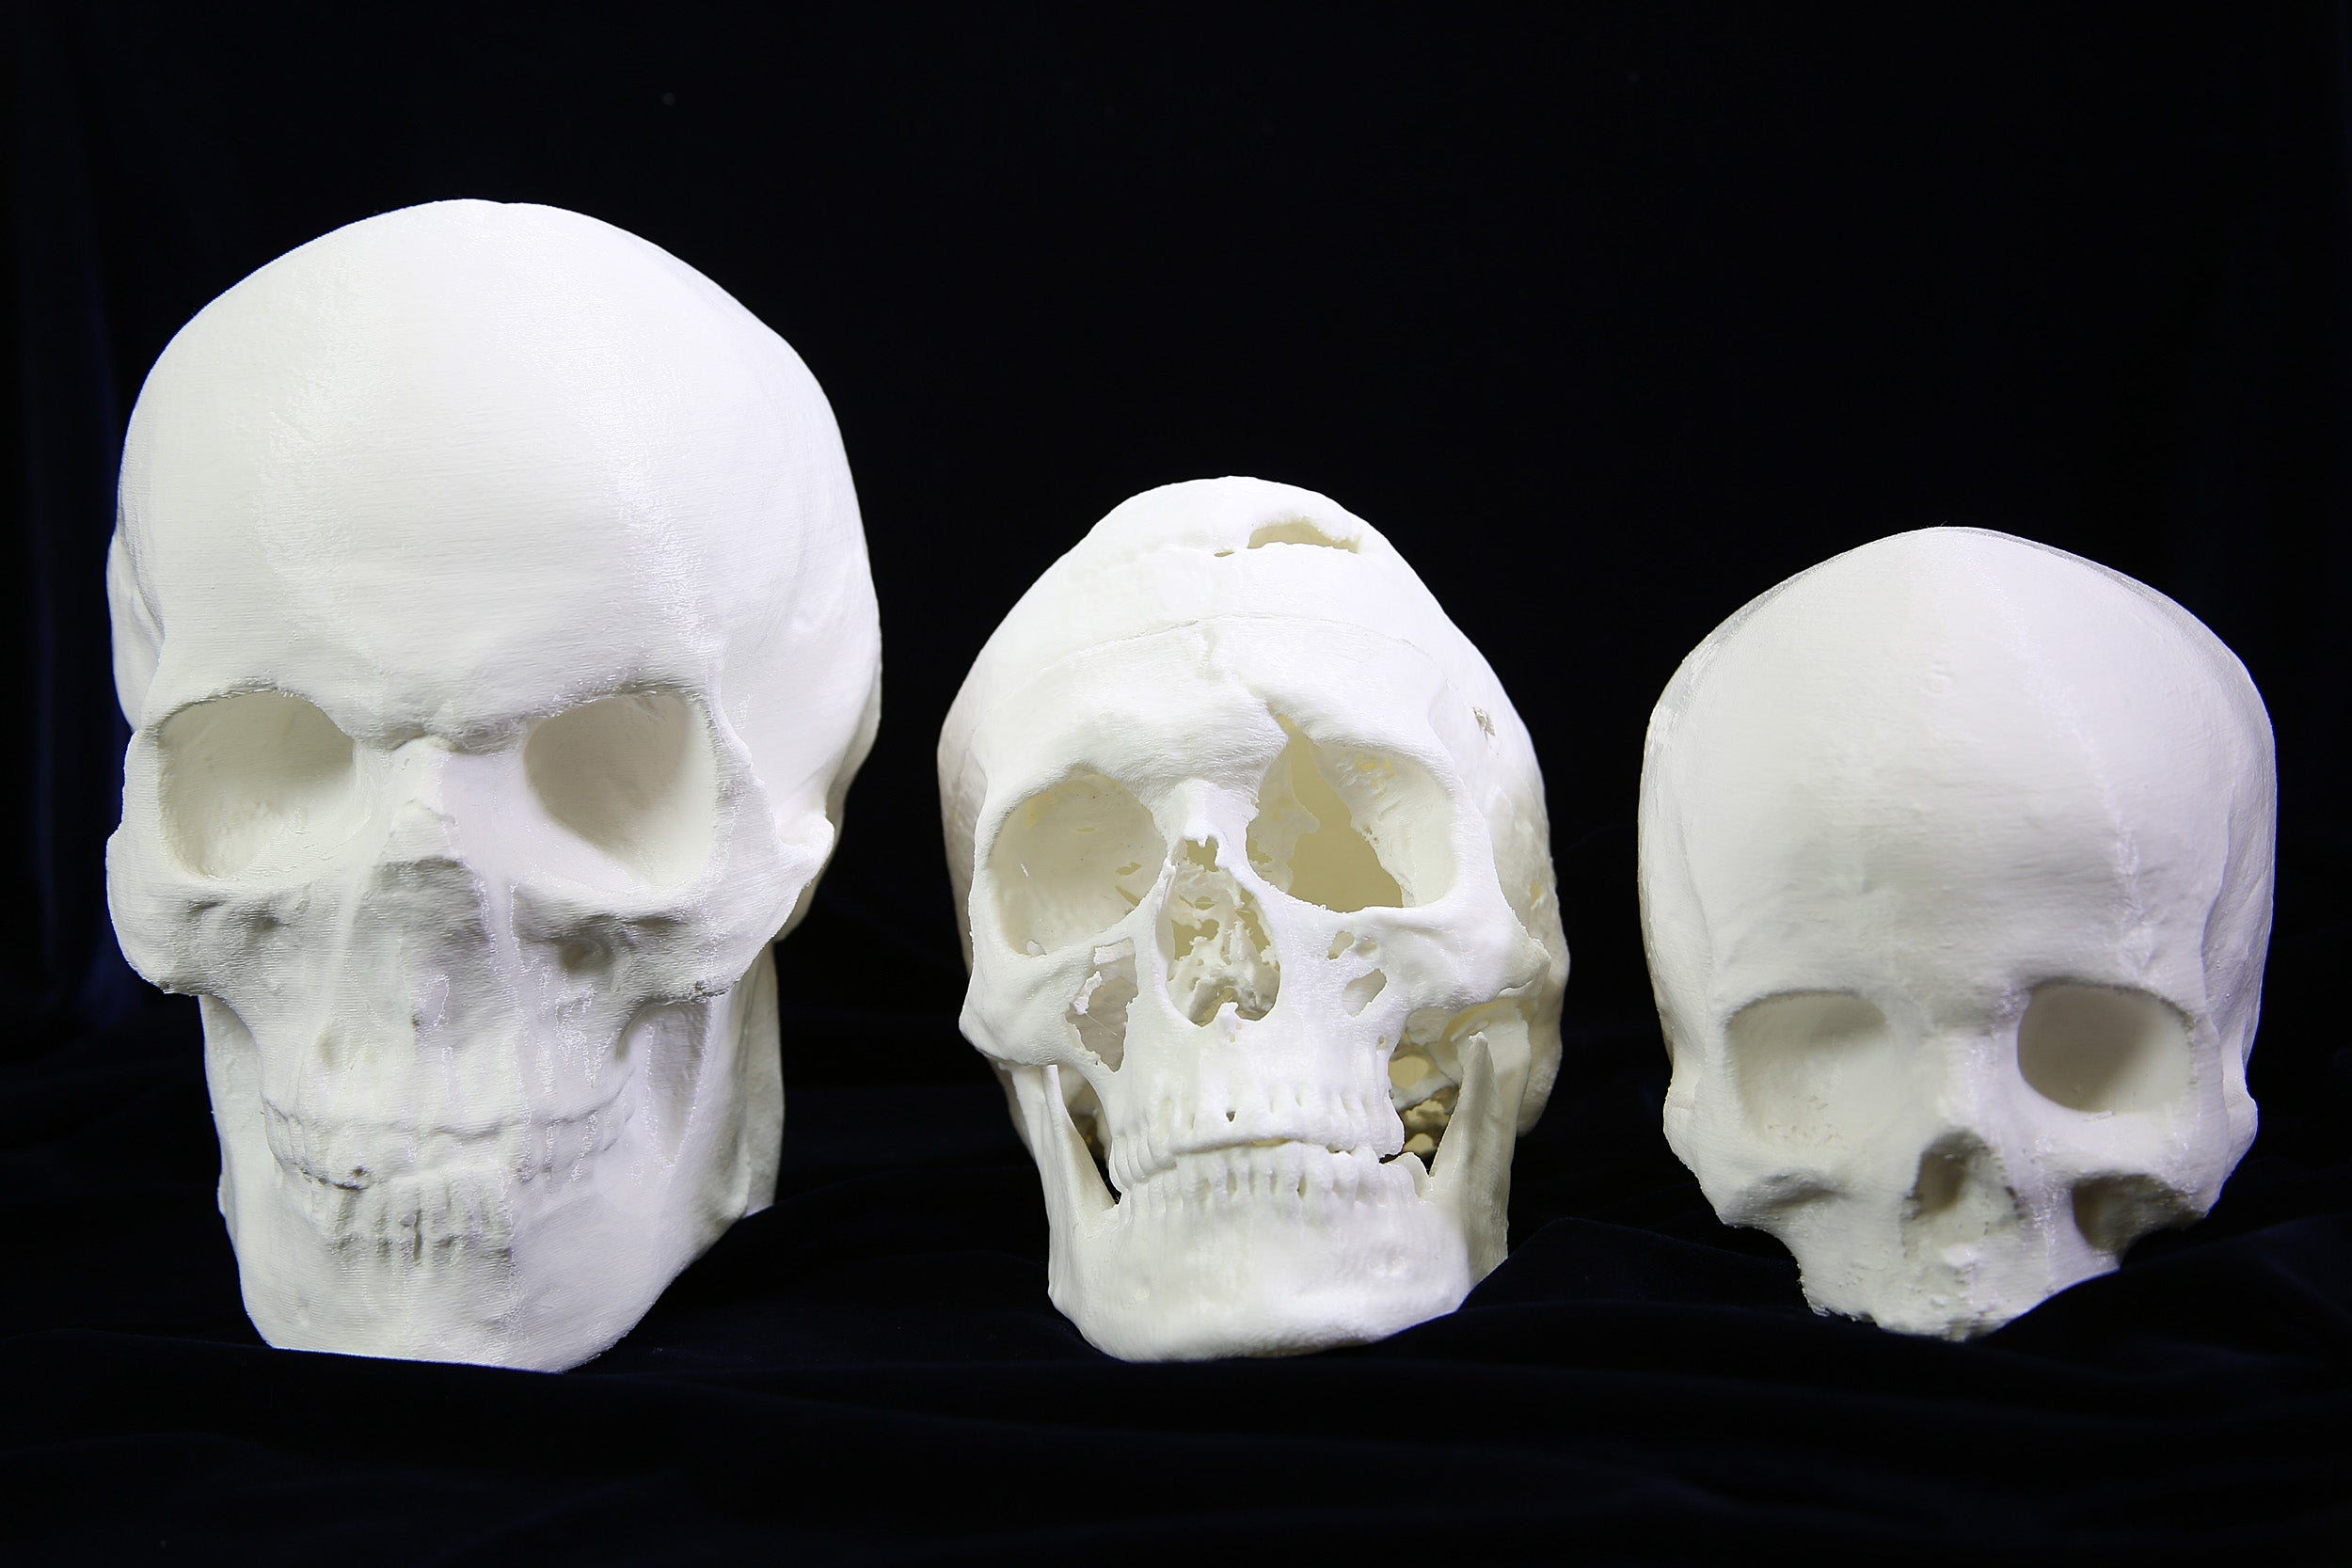 Three 3D printed skulls lined up against a black background